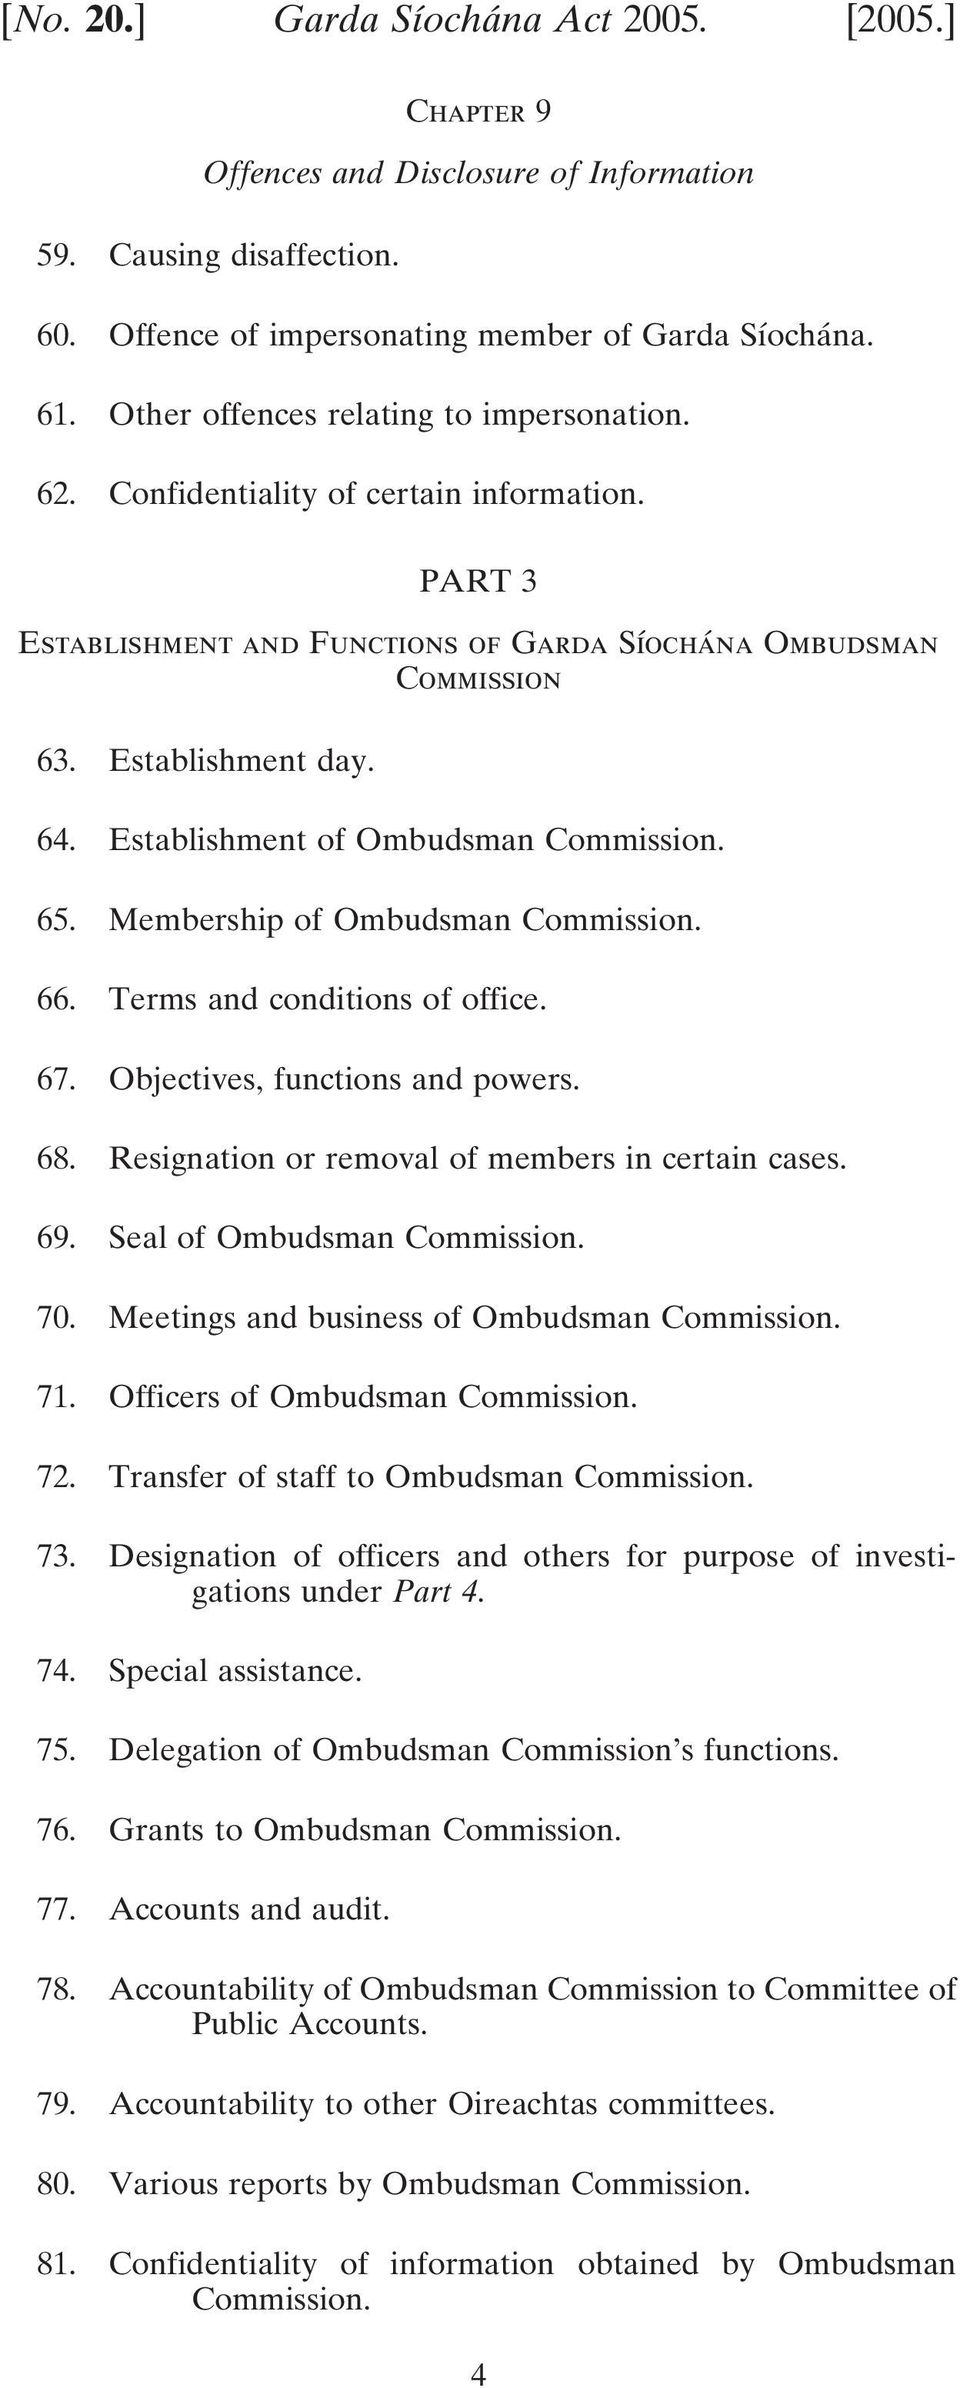 Establishment of Ombudsman Commission. 65. Membership of Ombudsman Commission. 66. Terms and conditions of office. 67. Objectives, functions and powers. 68.